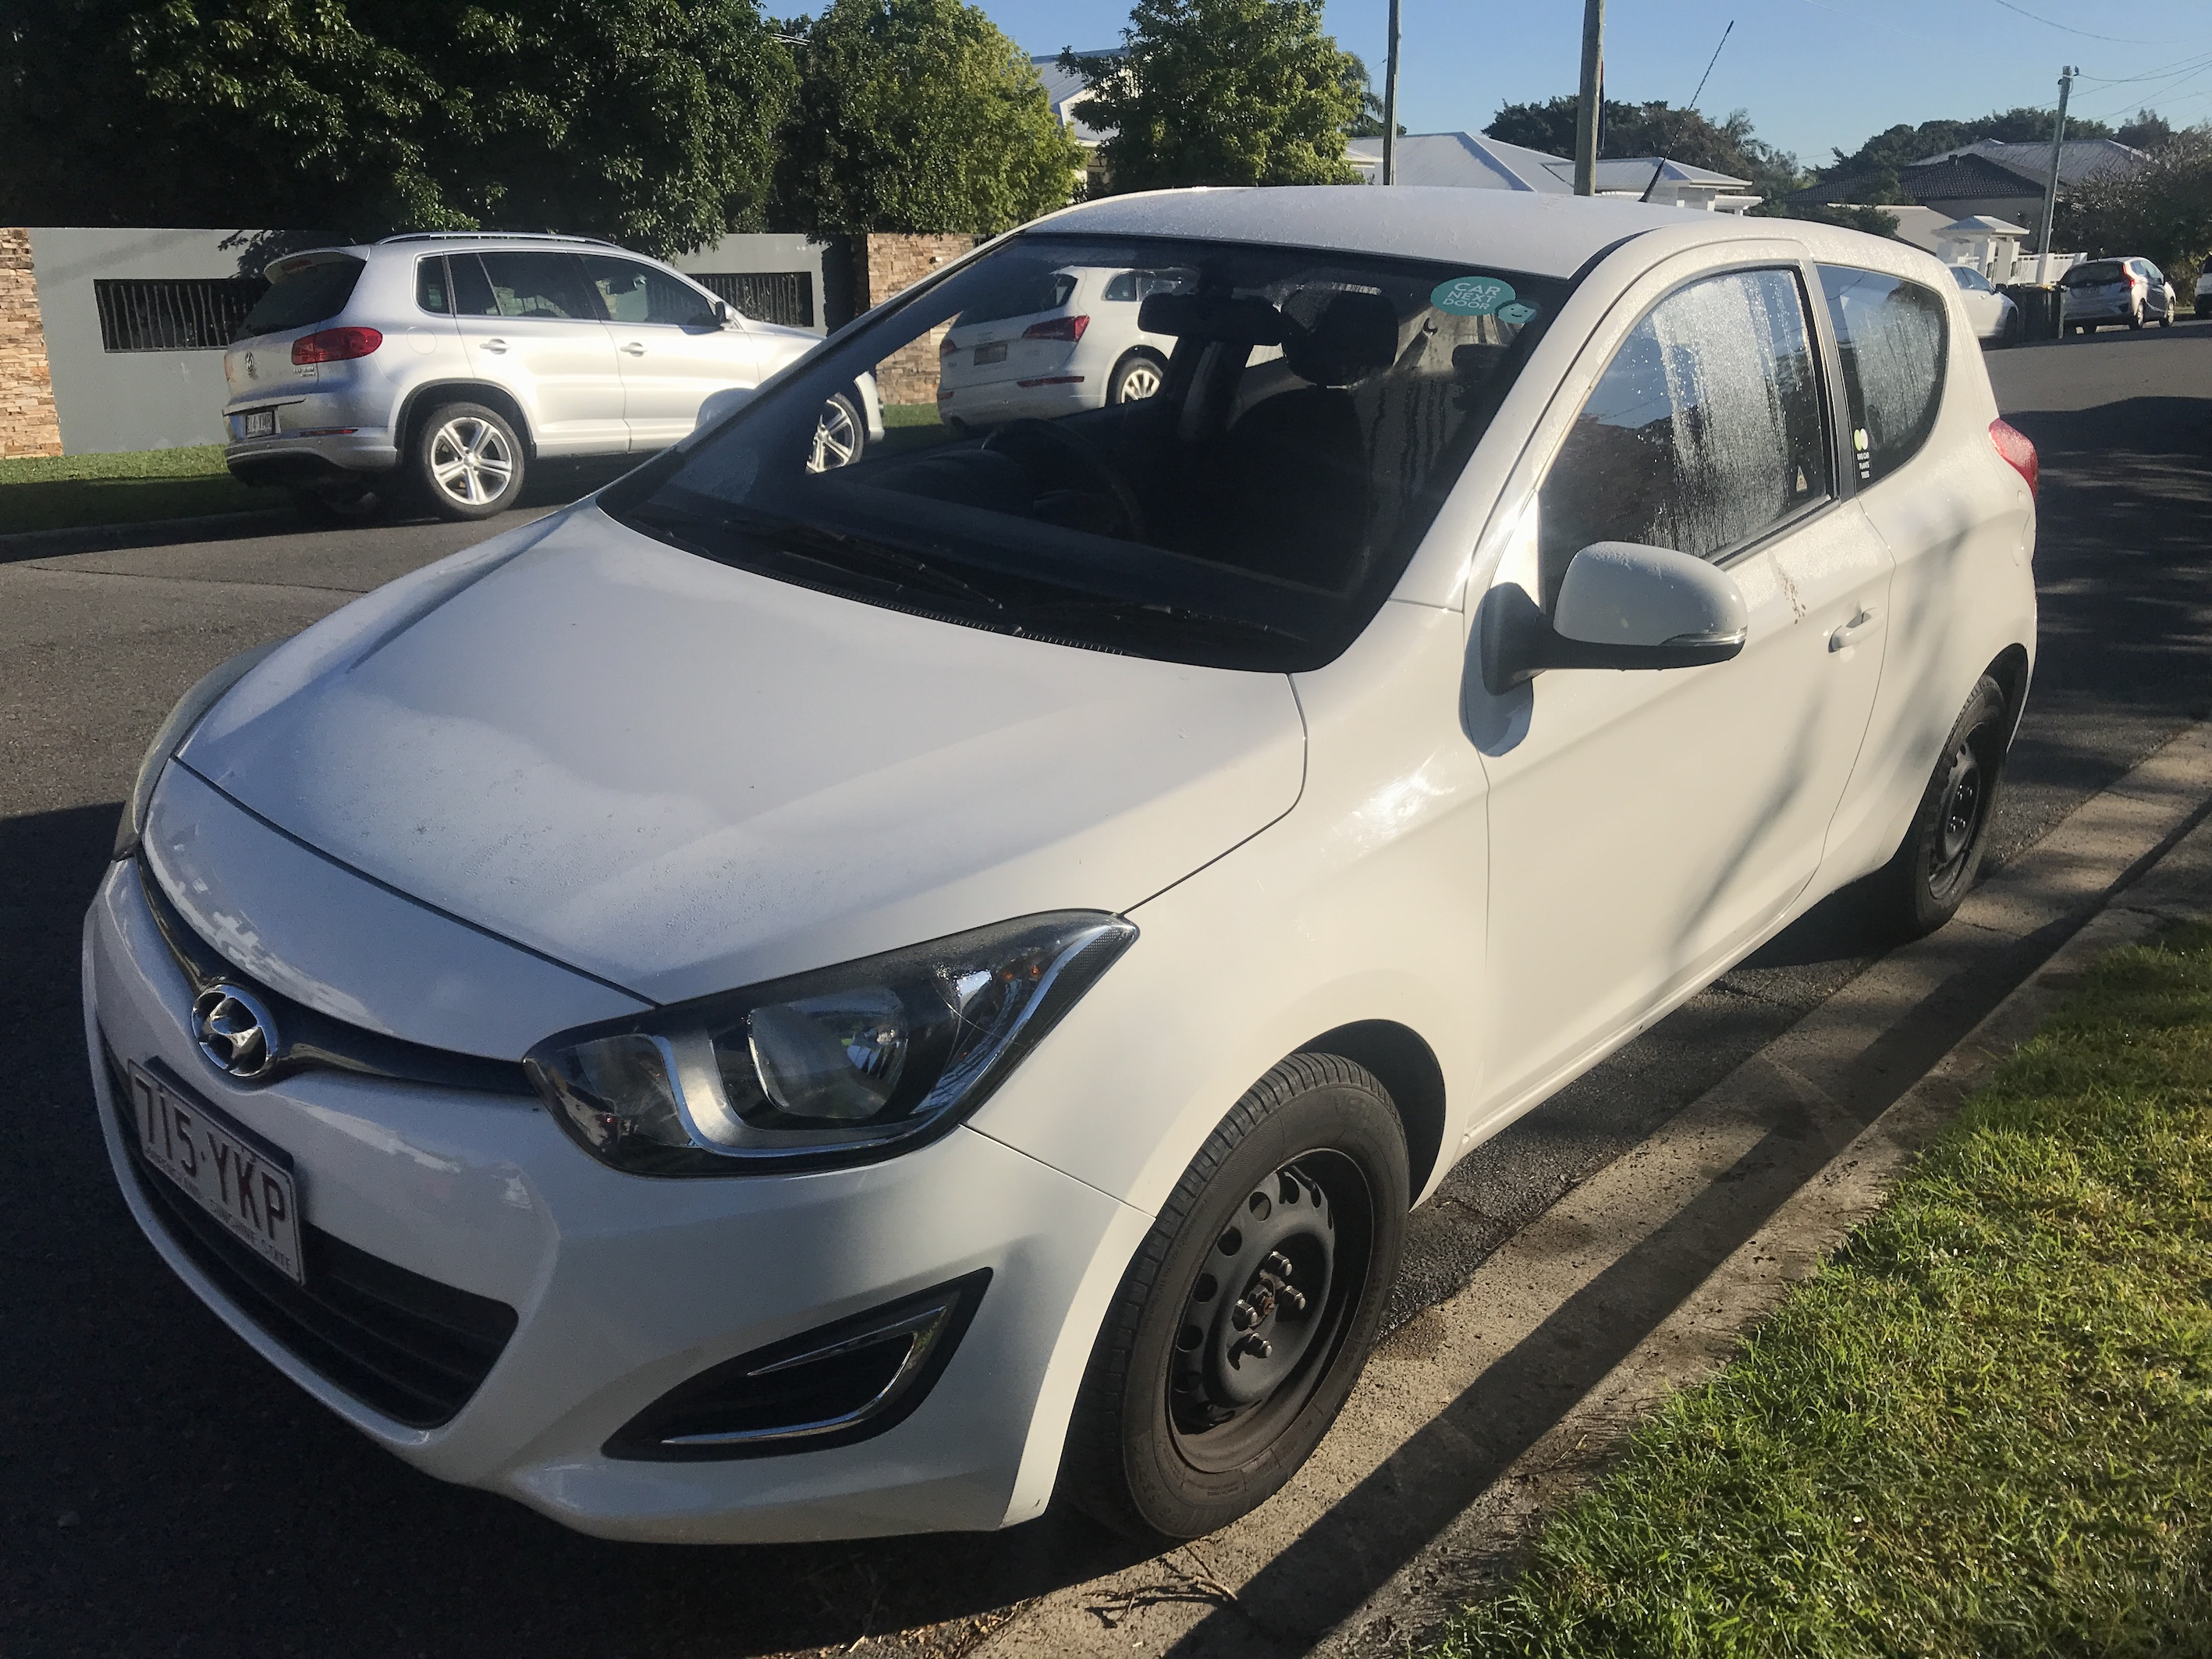 Picture of Helena's 2012 hyundai i20